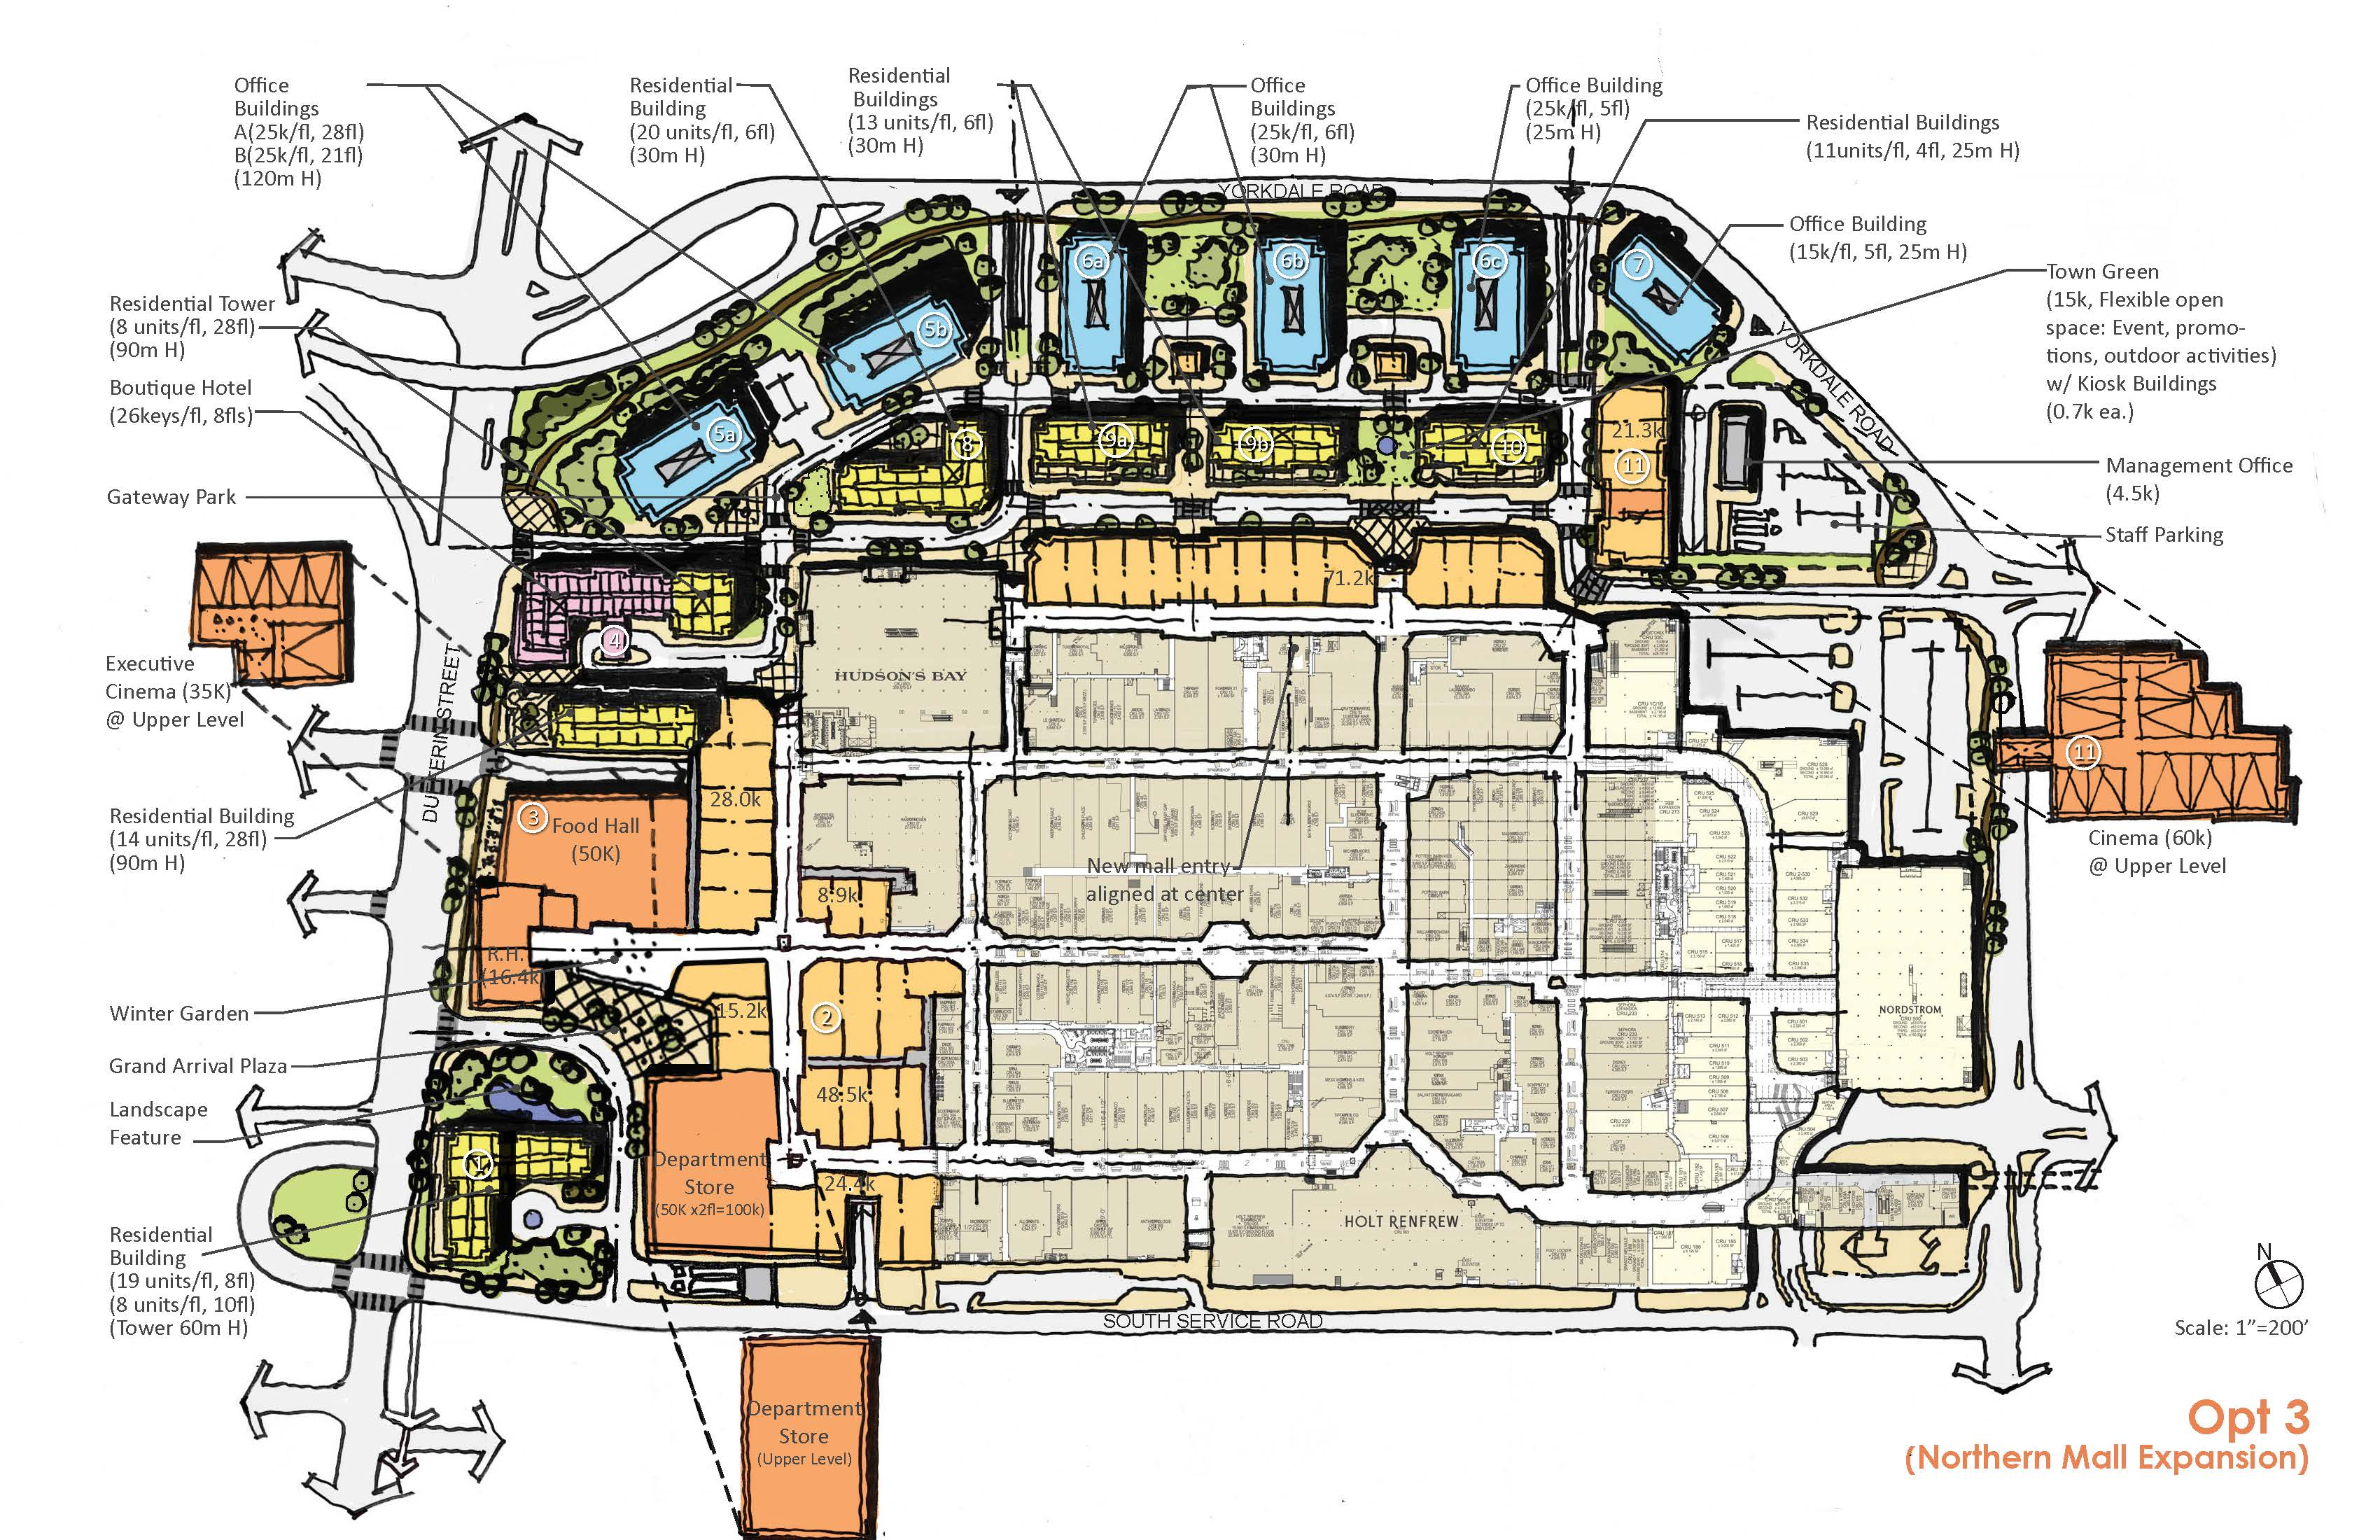 plan showing option three of the development proposal for Yorkdale Block, showing retail, hotel, office and residential spaces